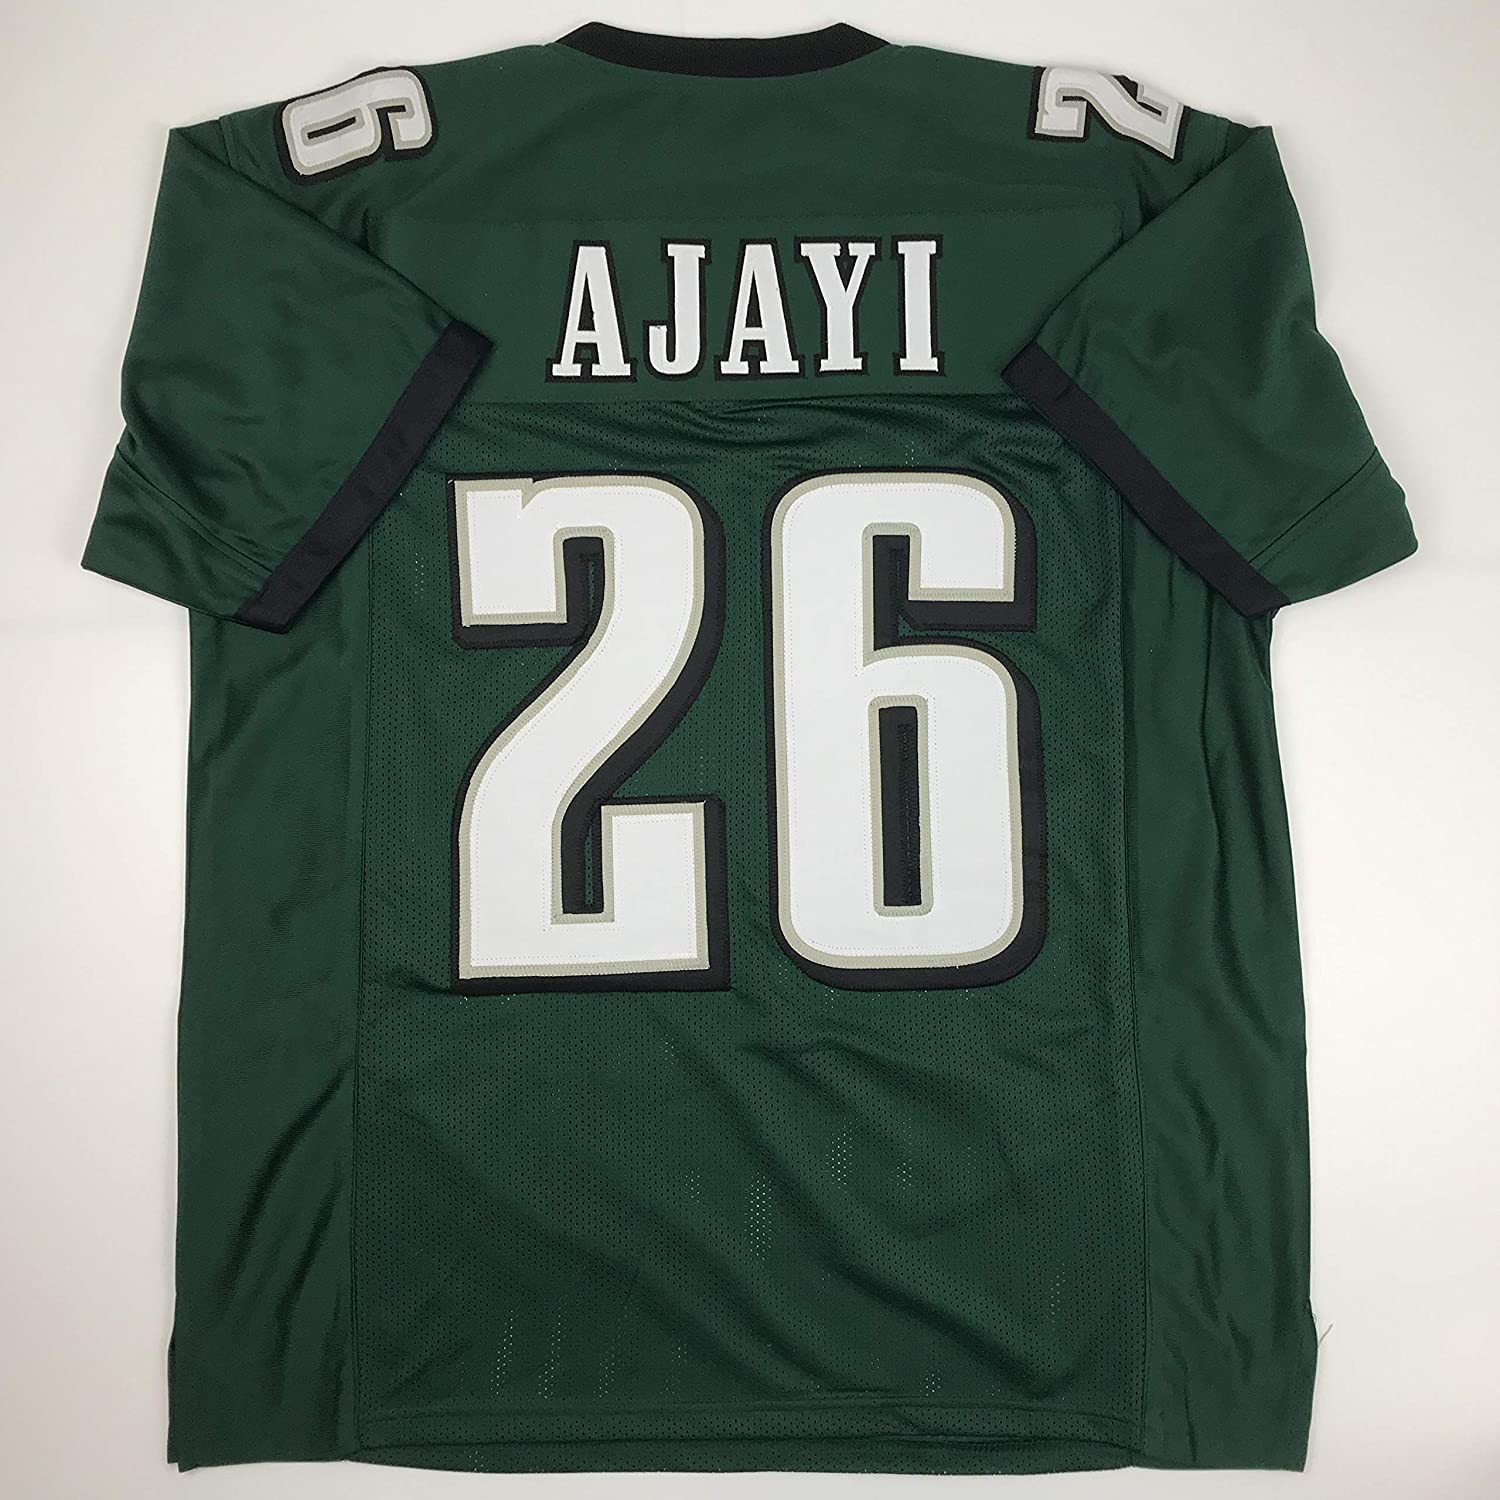 9e824b8c Unsigned Jay Ajayi Philadelphia Green Custom Stitched Football Jersey Size  Men's XL New No Brands/Logos